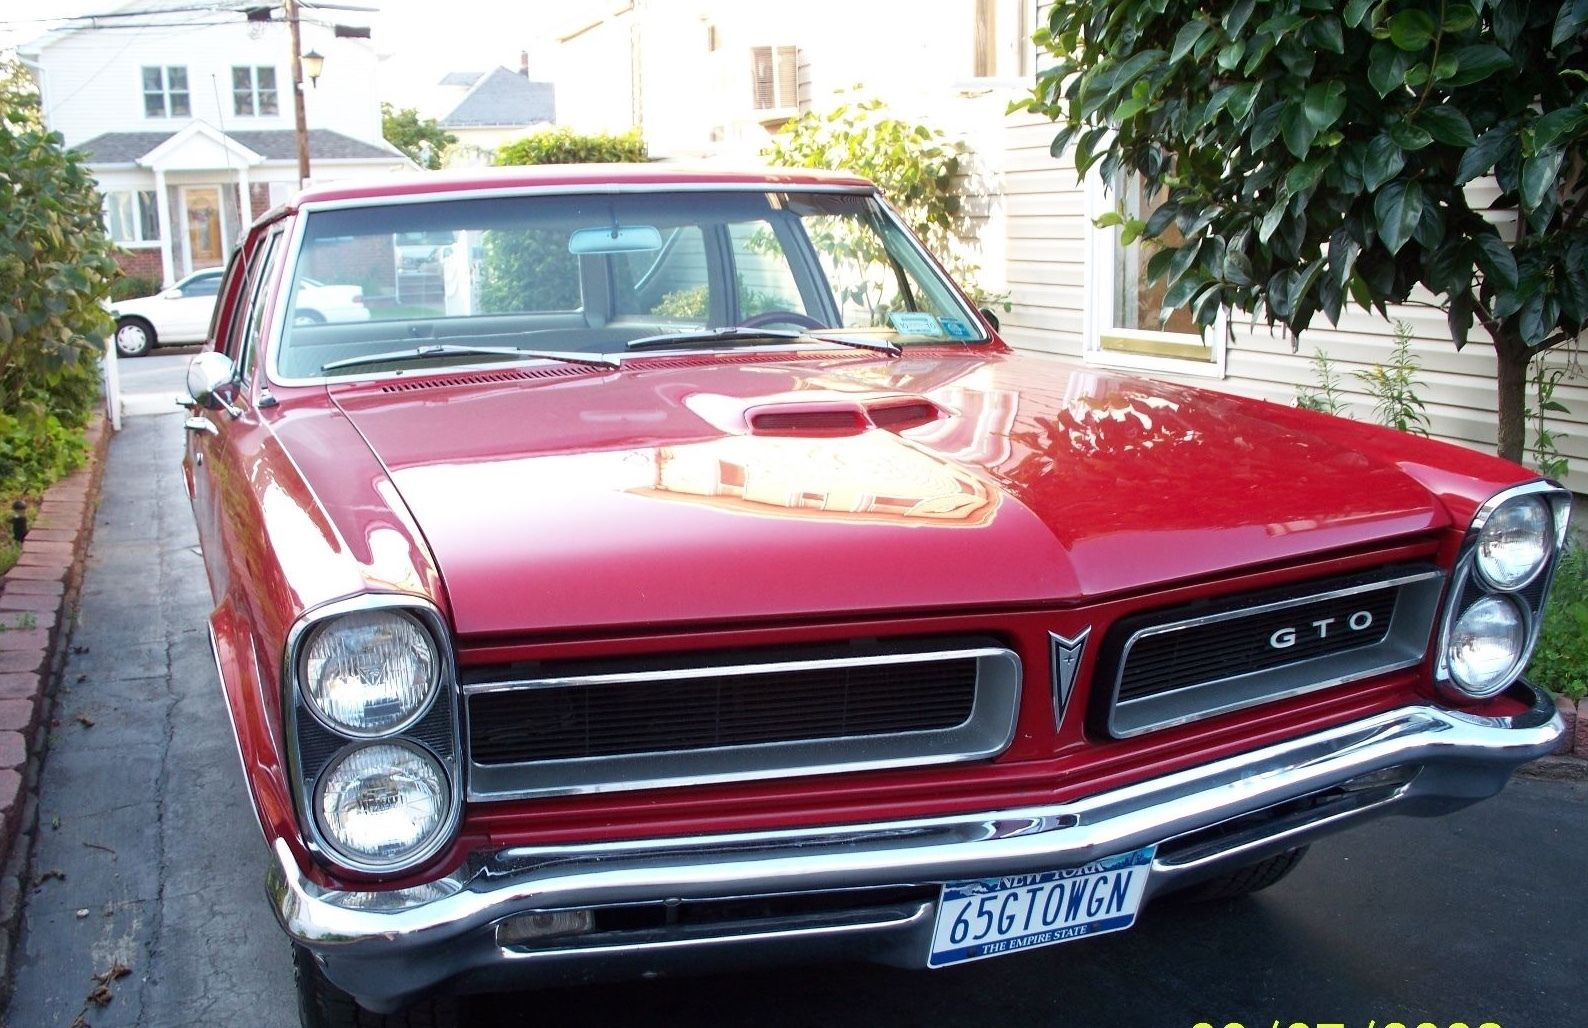 Daily Turismo: Another Defunct Magazine Project Car: 1965 Pontiac